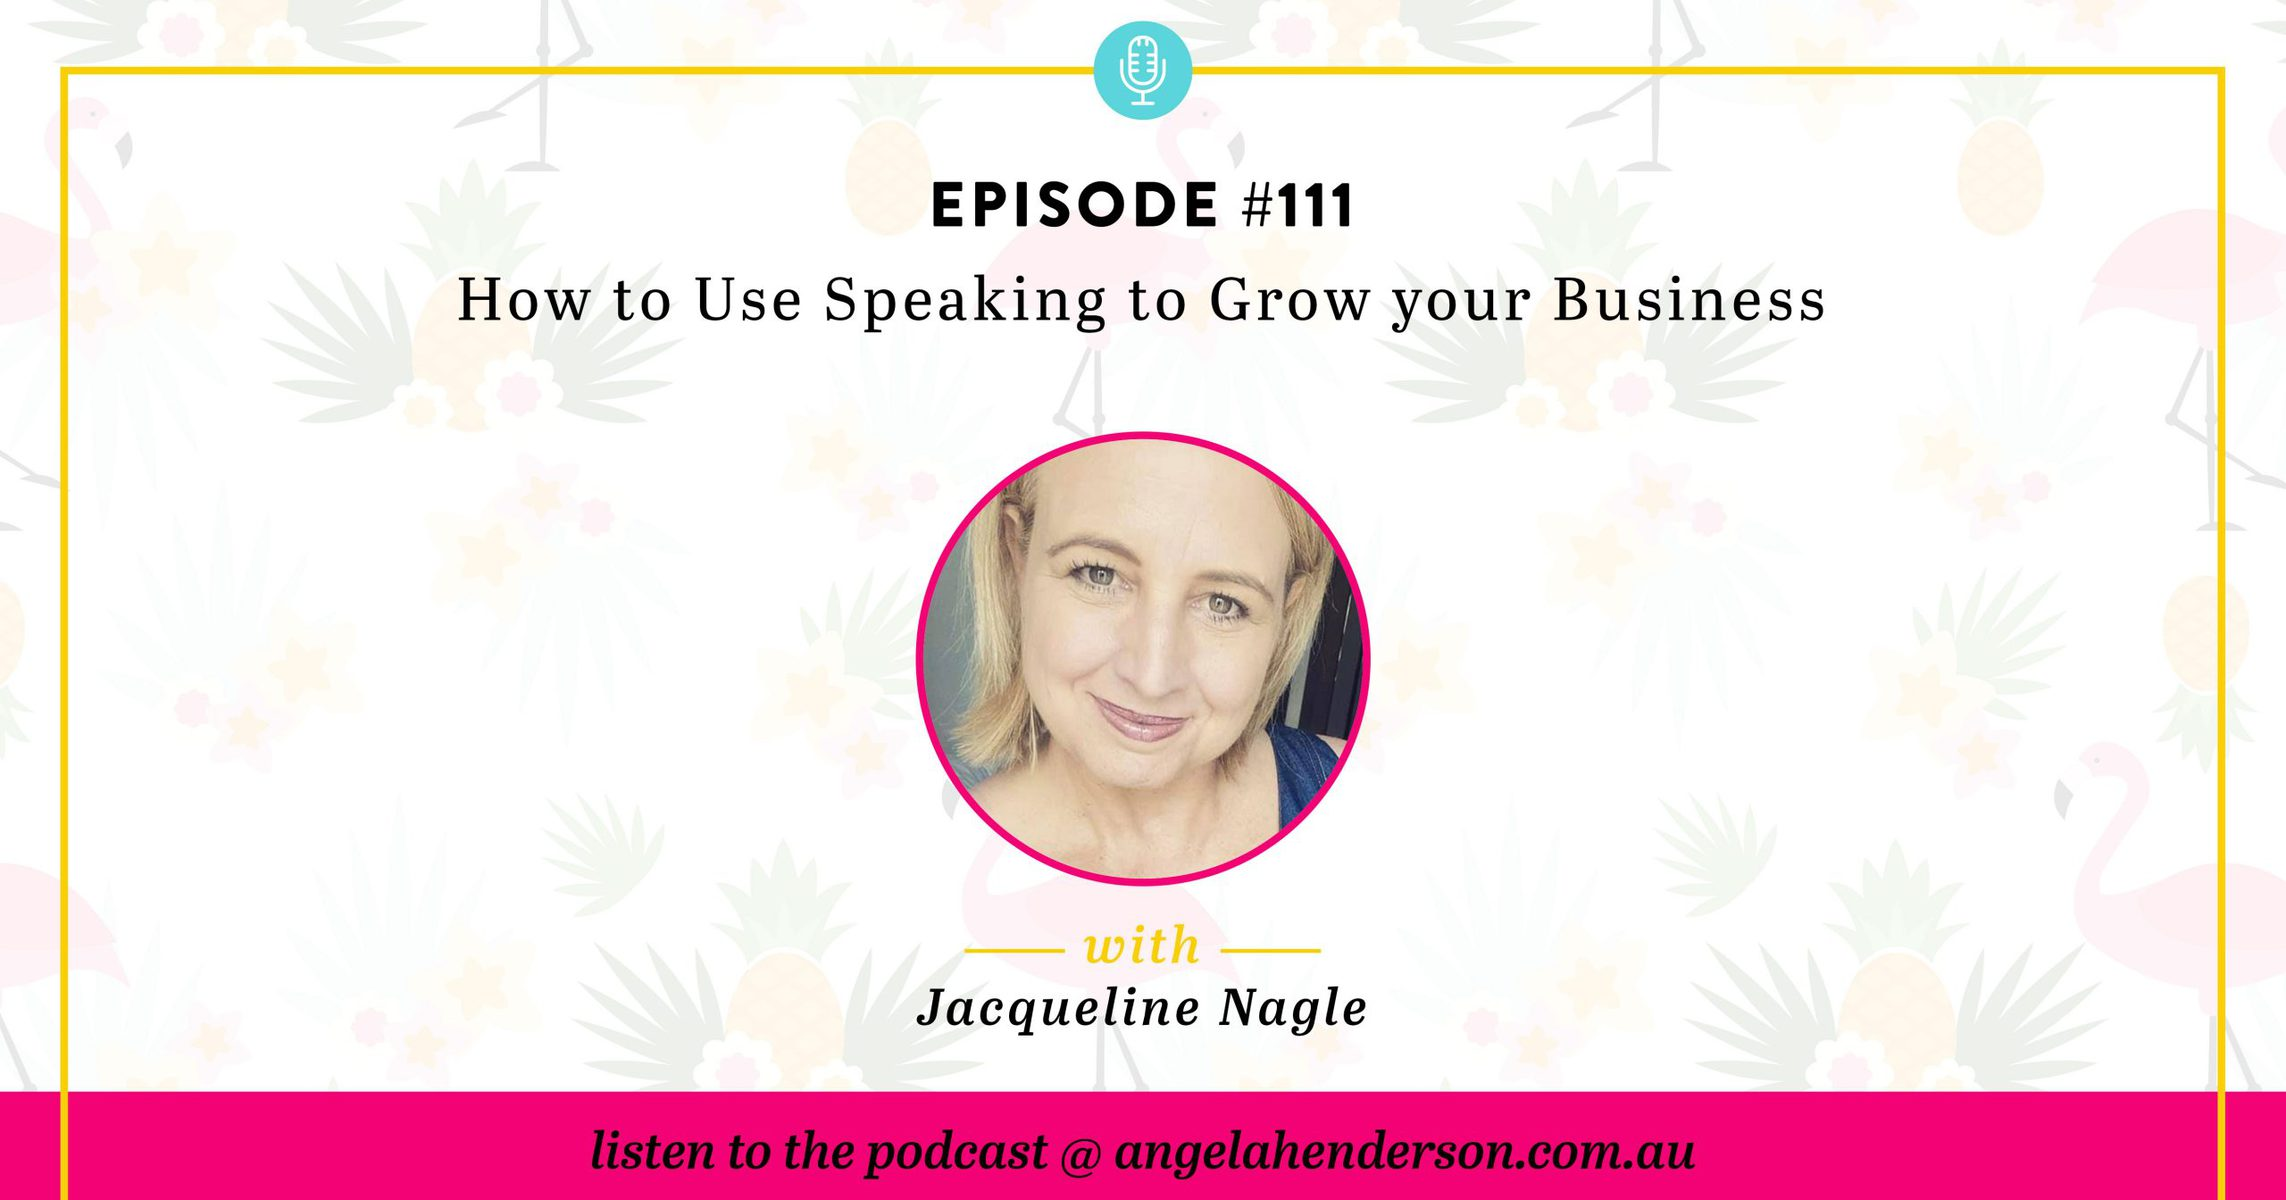 How to Use Speaking to Grow your Business